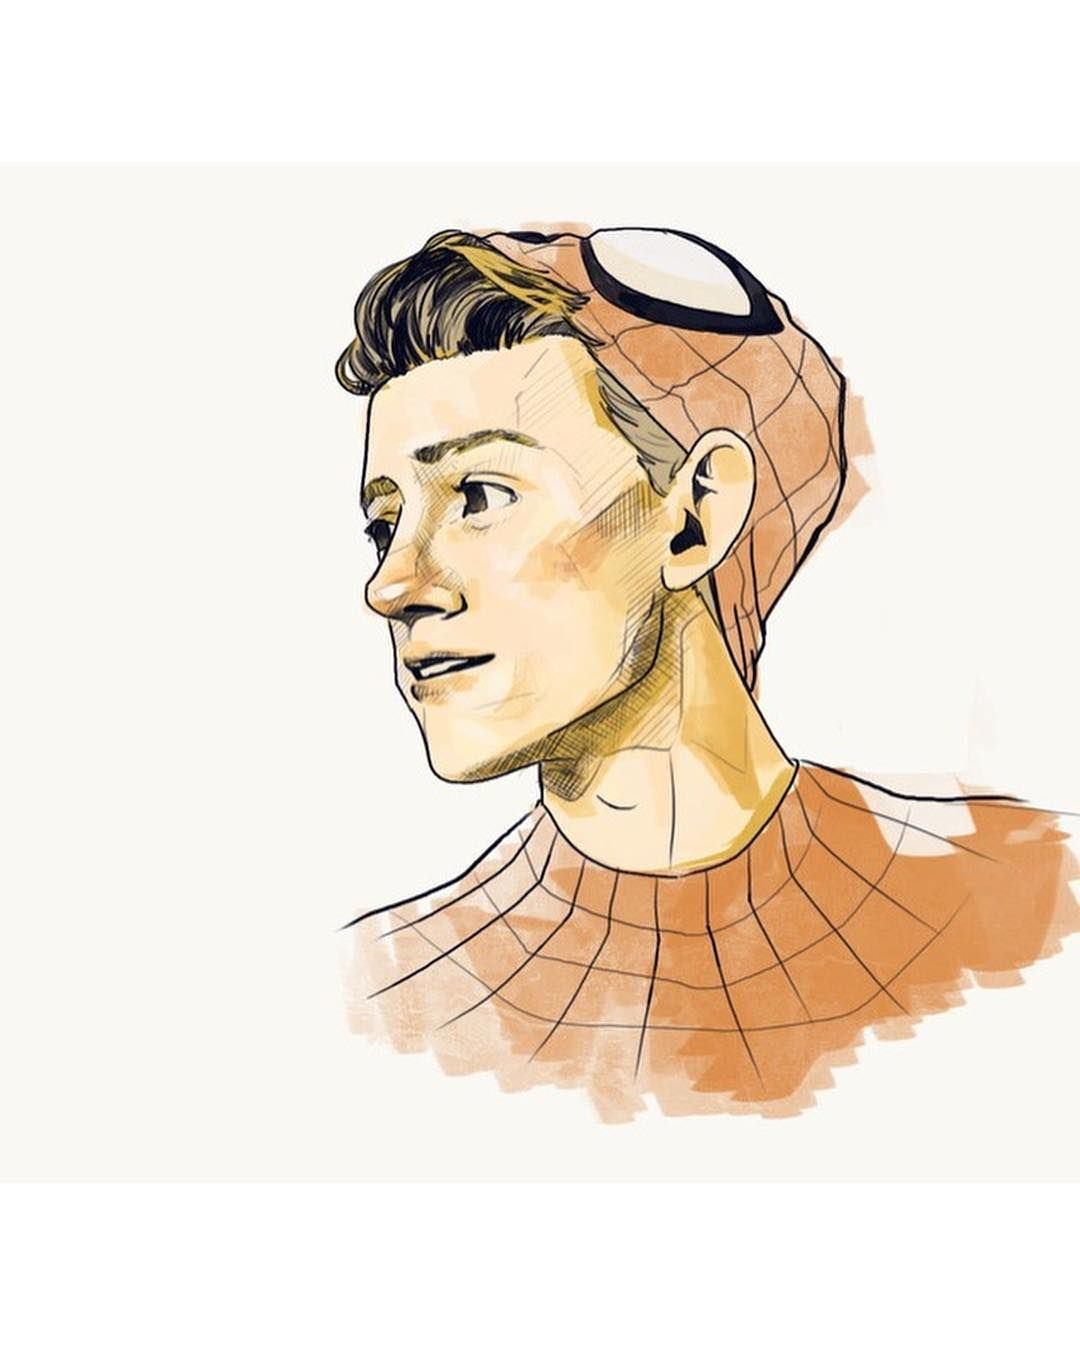 Art Credits to spidey-art on Tumblr and source credits to